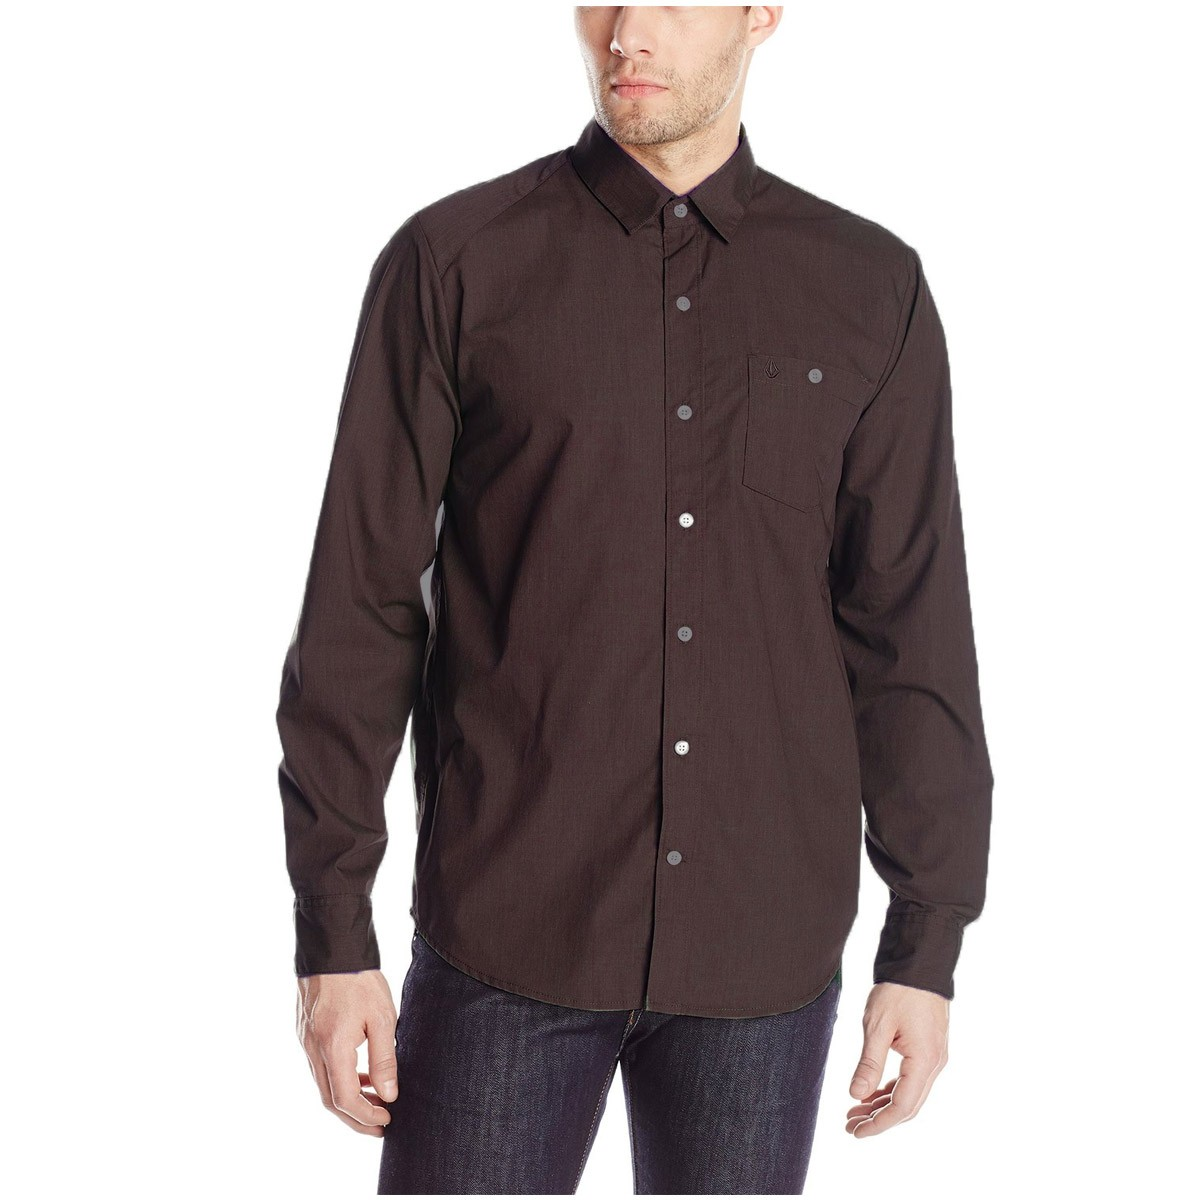 volcom-everett-solid-long-sleeve-shirt-bark-brown 3.1506907839.jpg 37ab852b55b